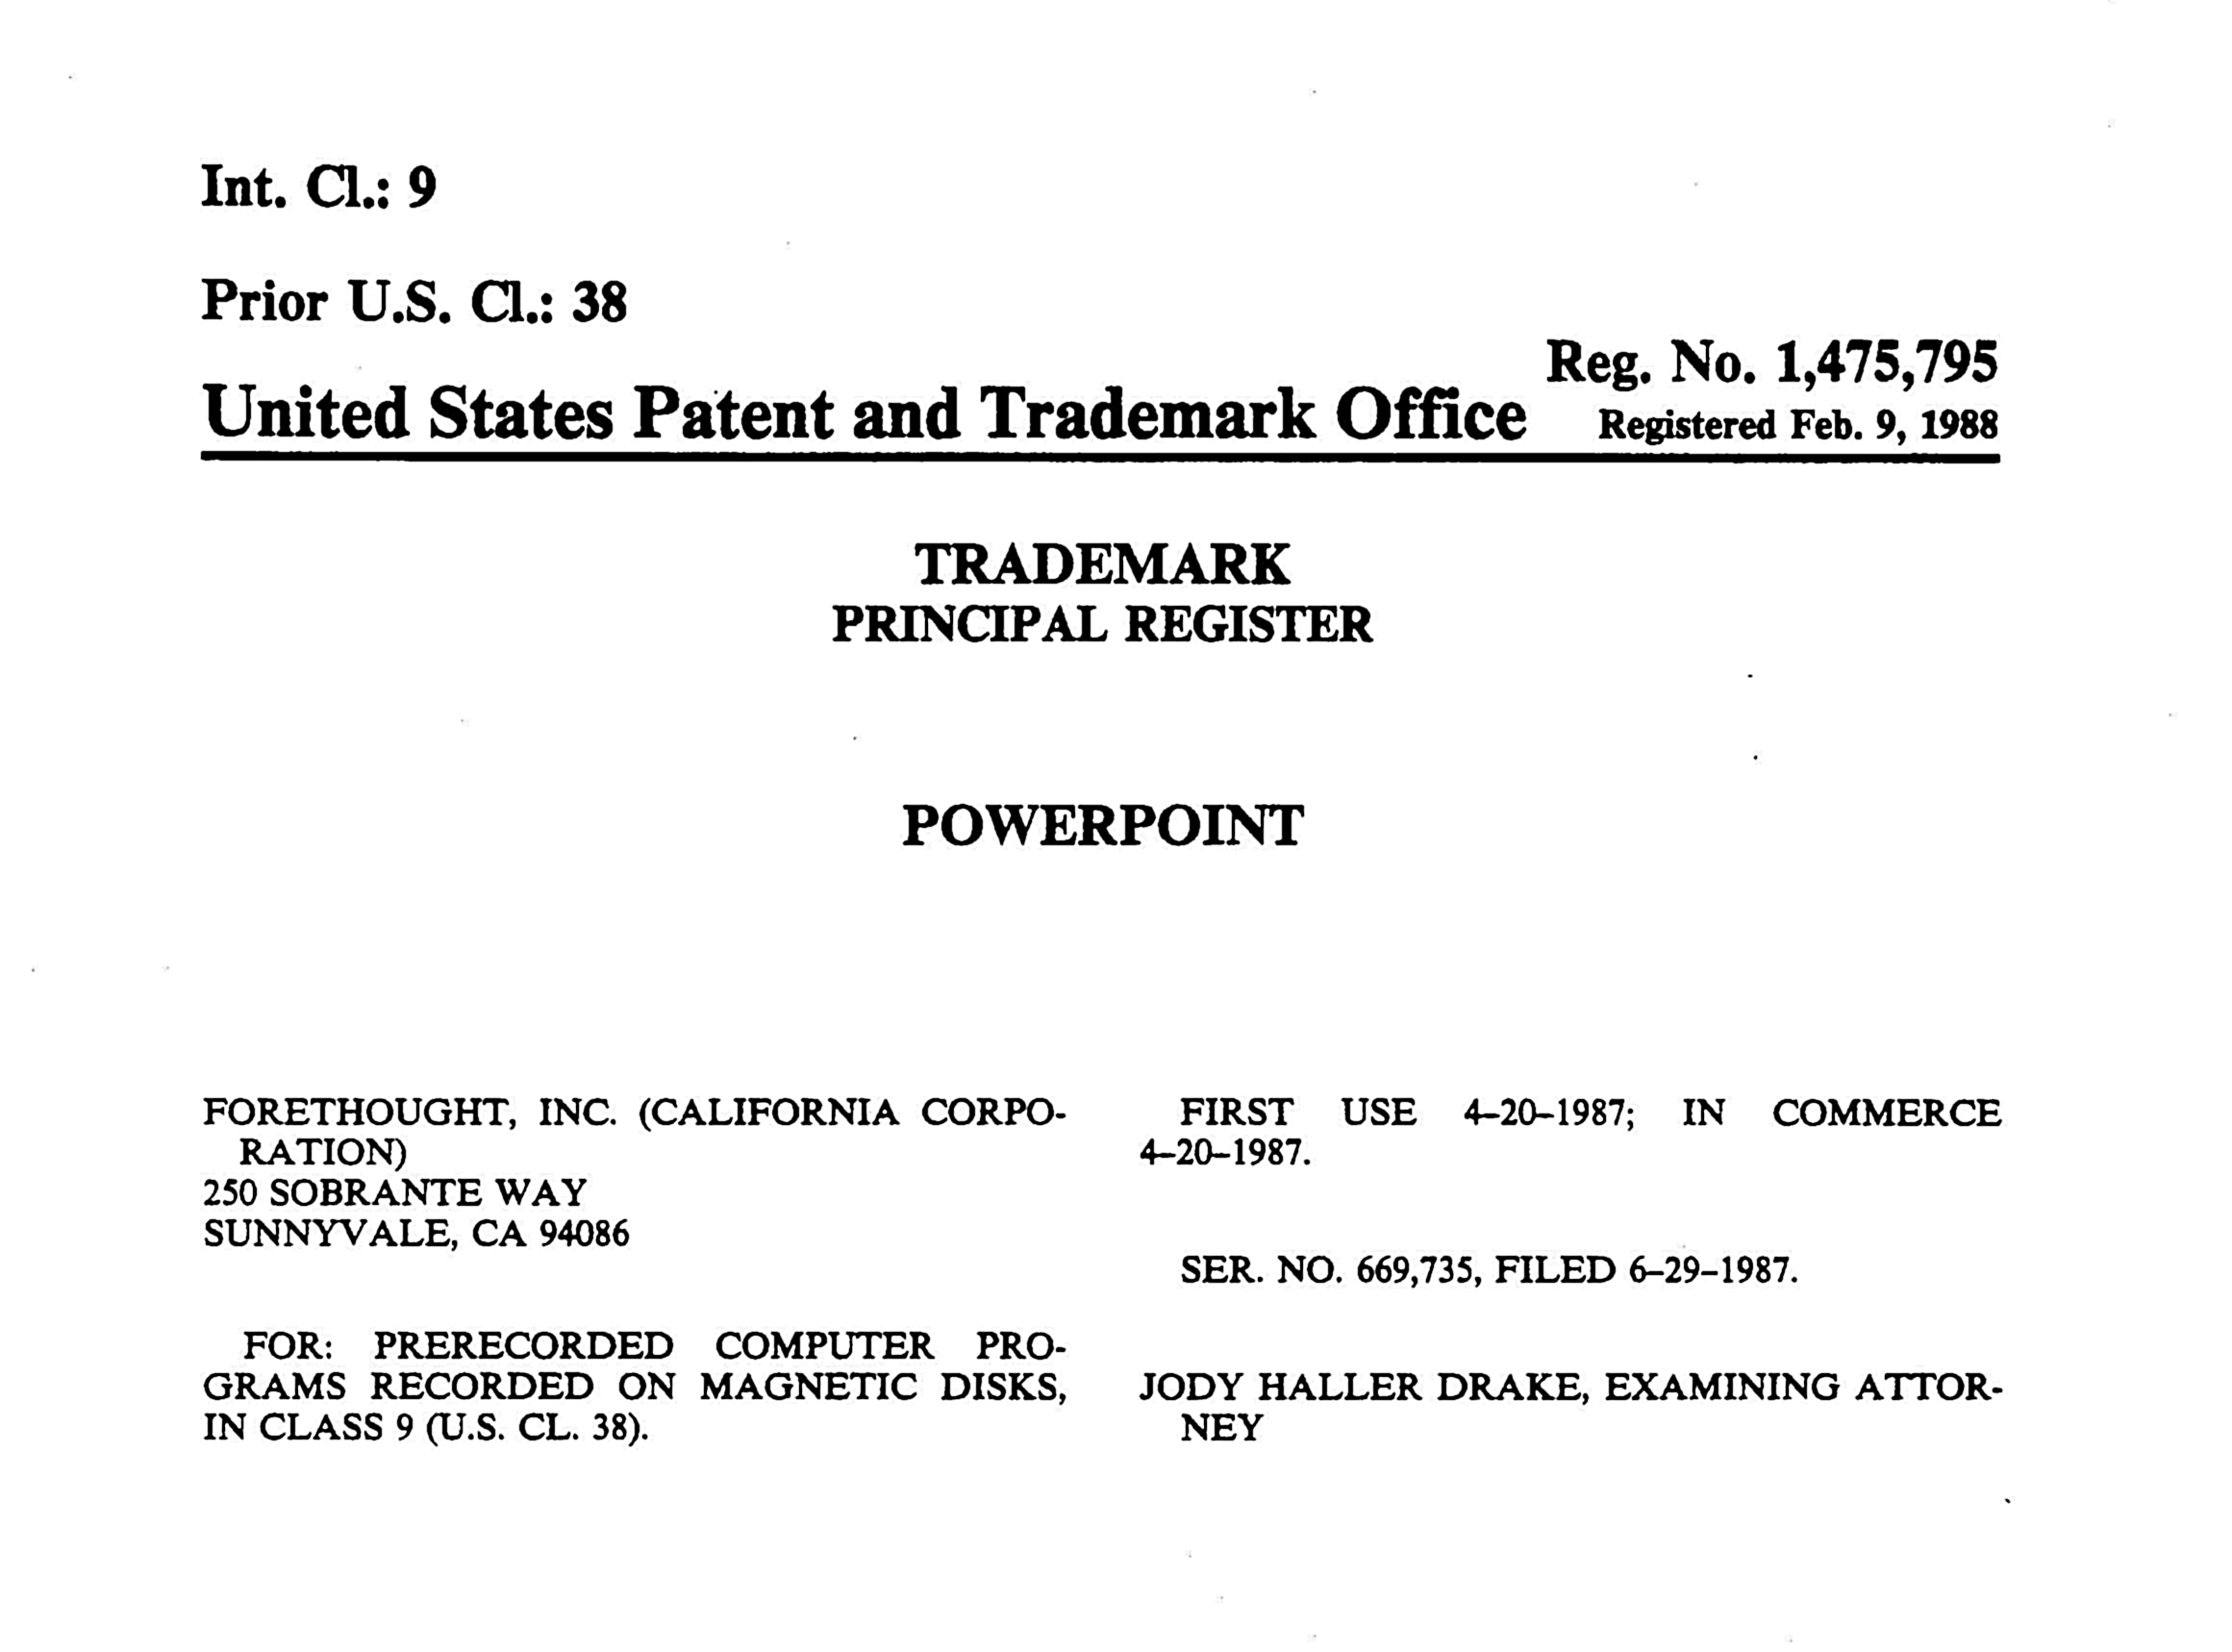 PowerPoint Trademark Registration US 1987